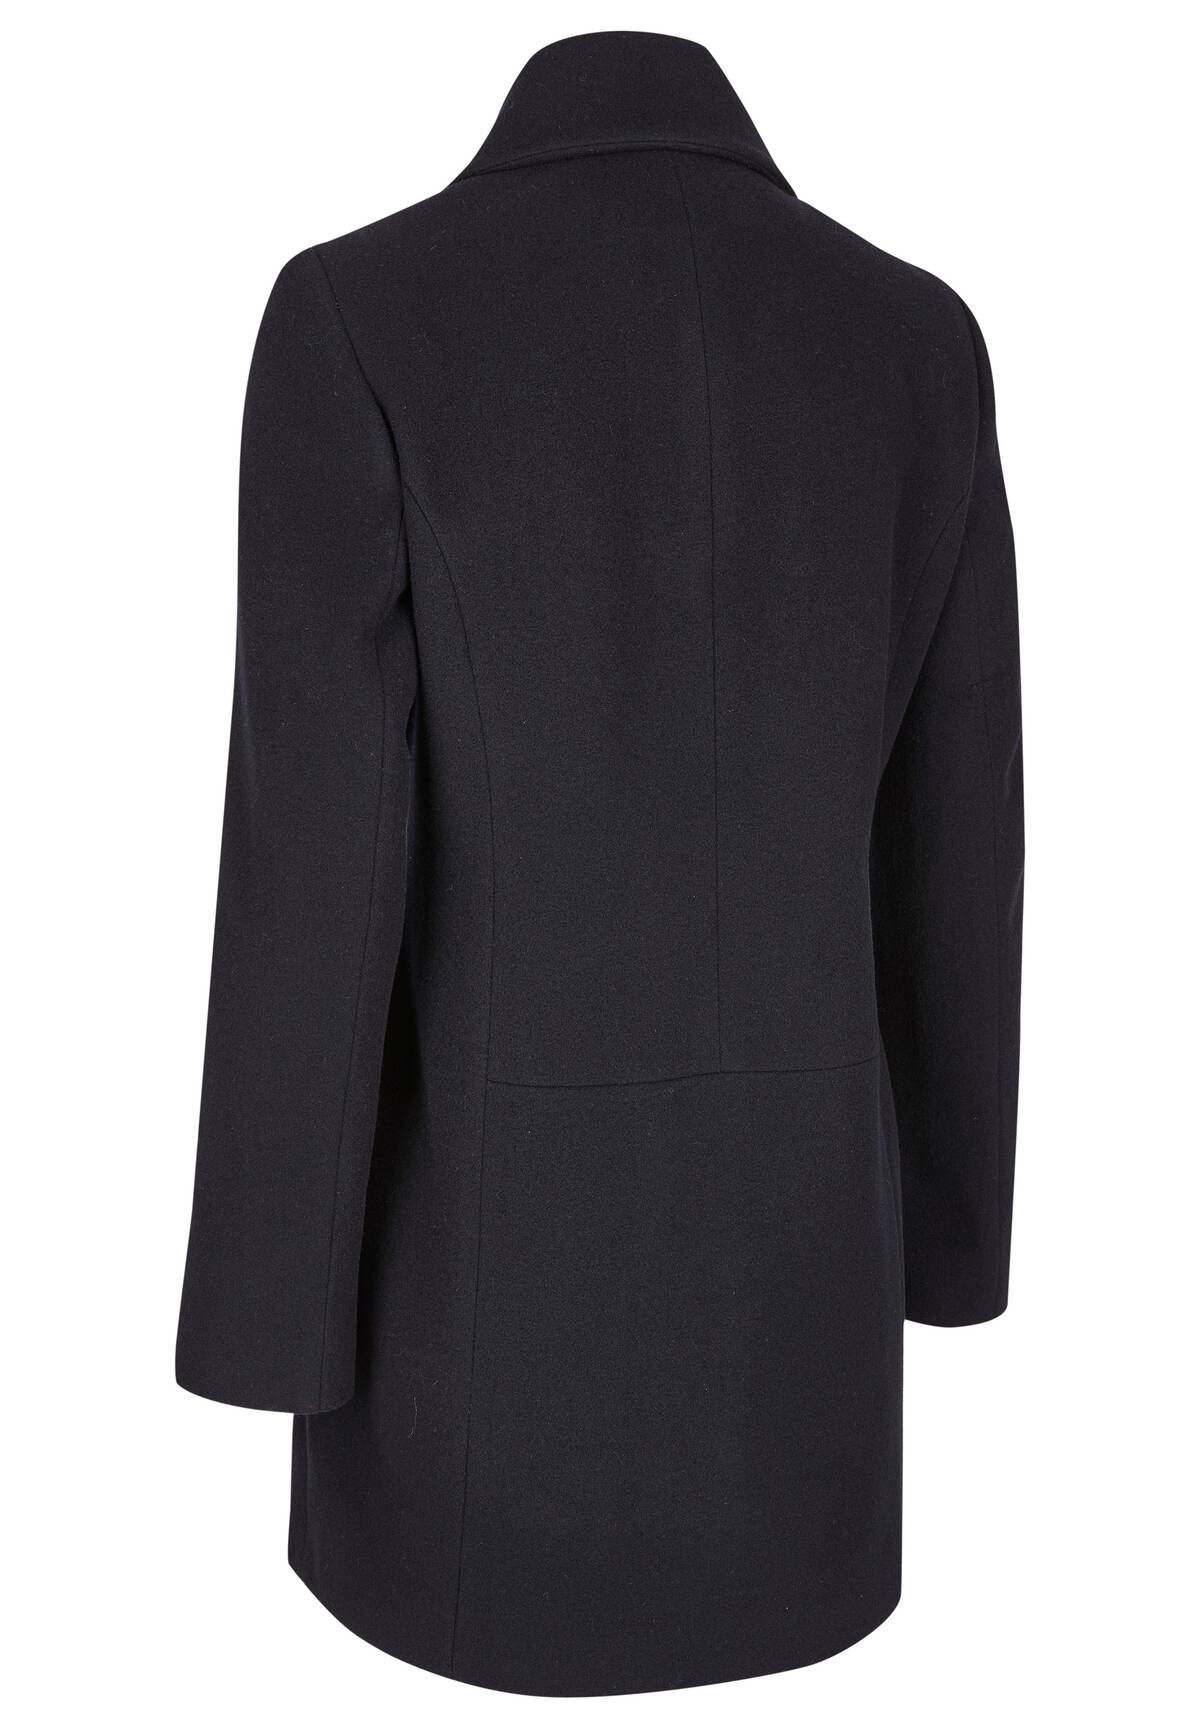 Modischer Cabanmantel / Wool Coat